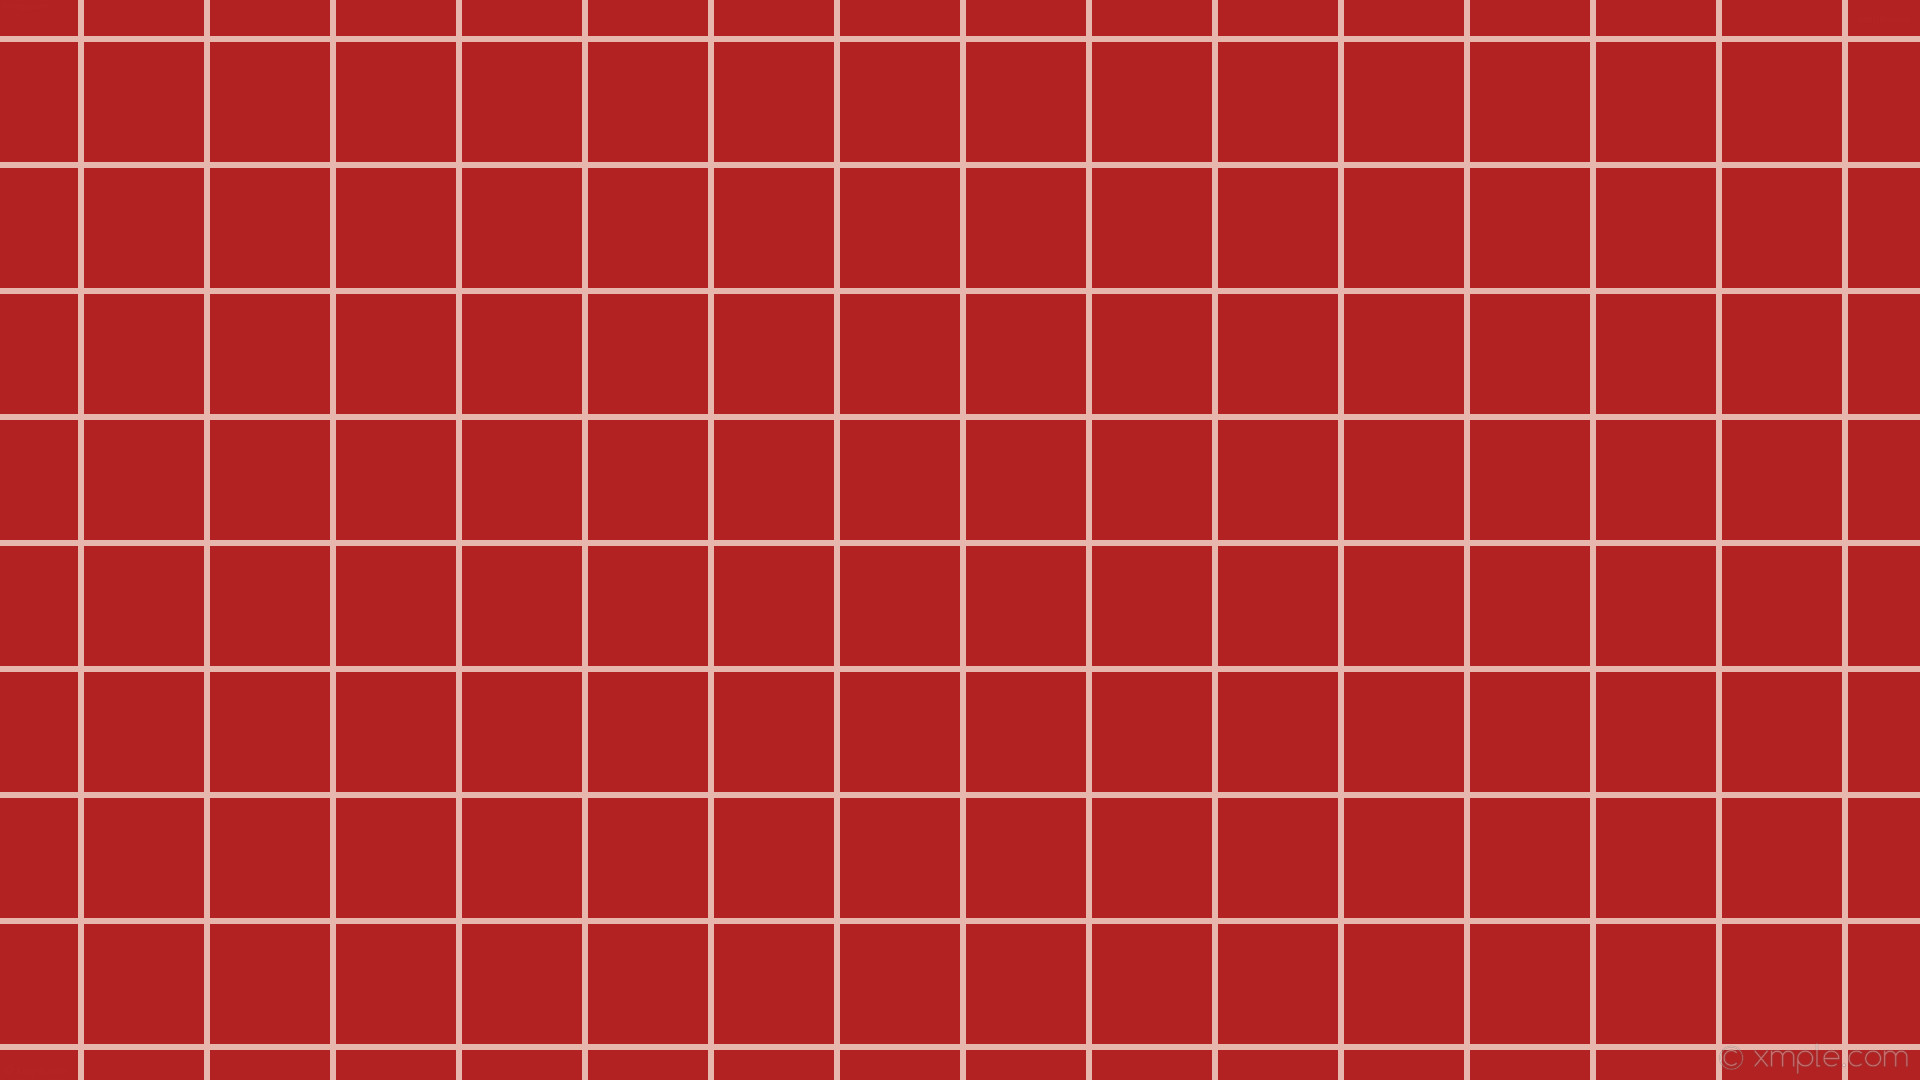 1920x1080 wallpaper graph paper red white grid fire brick old lace #b22222 #fdf5e6 0°